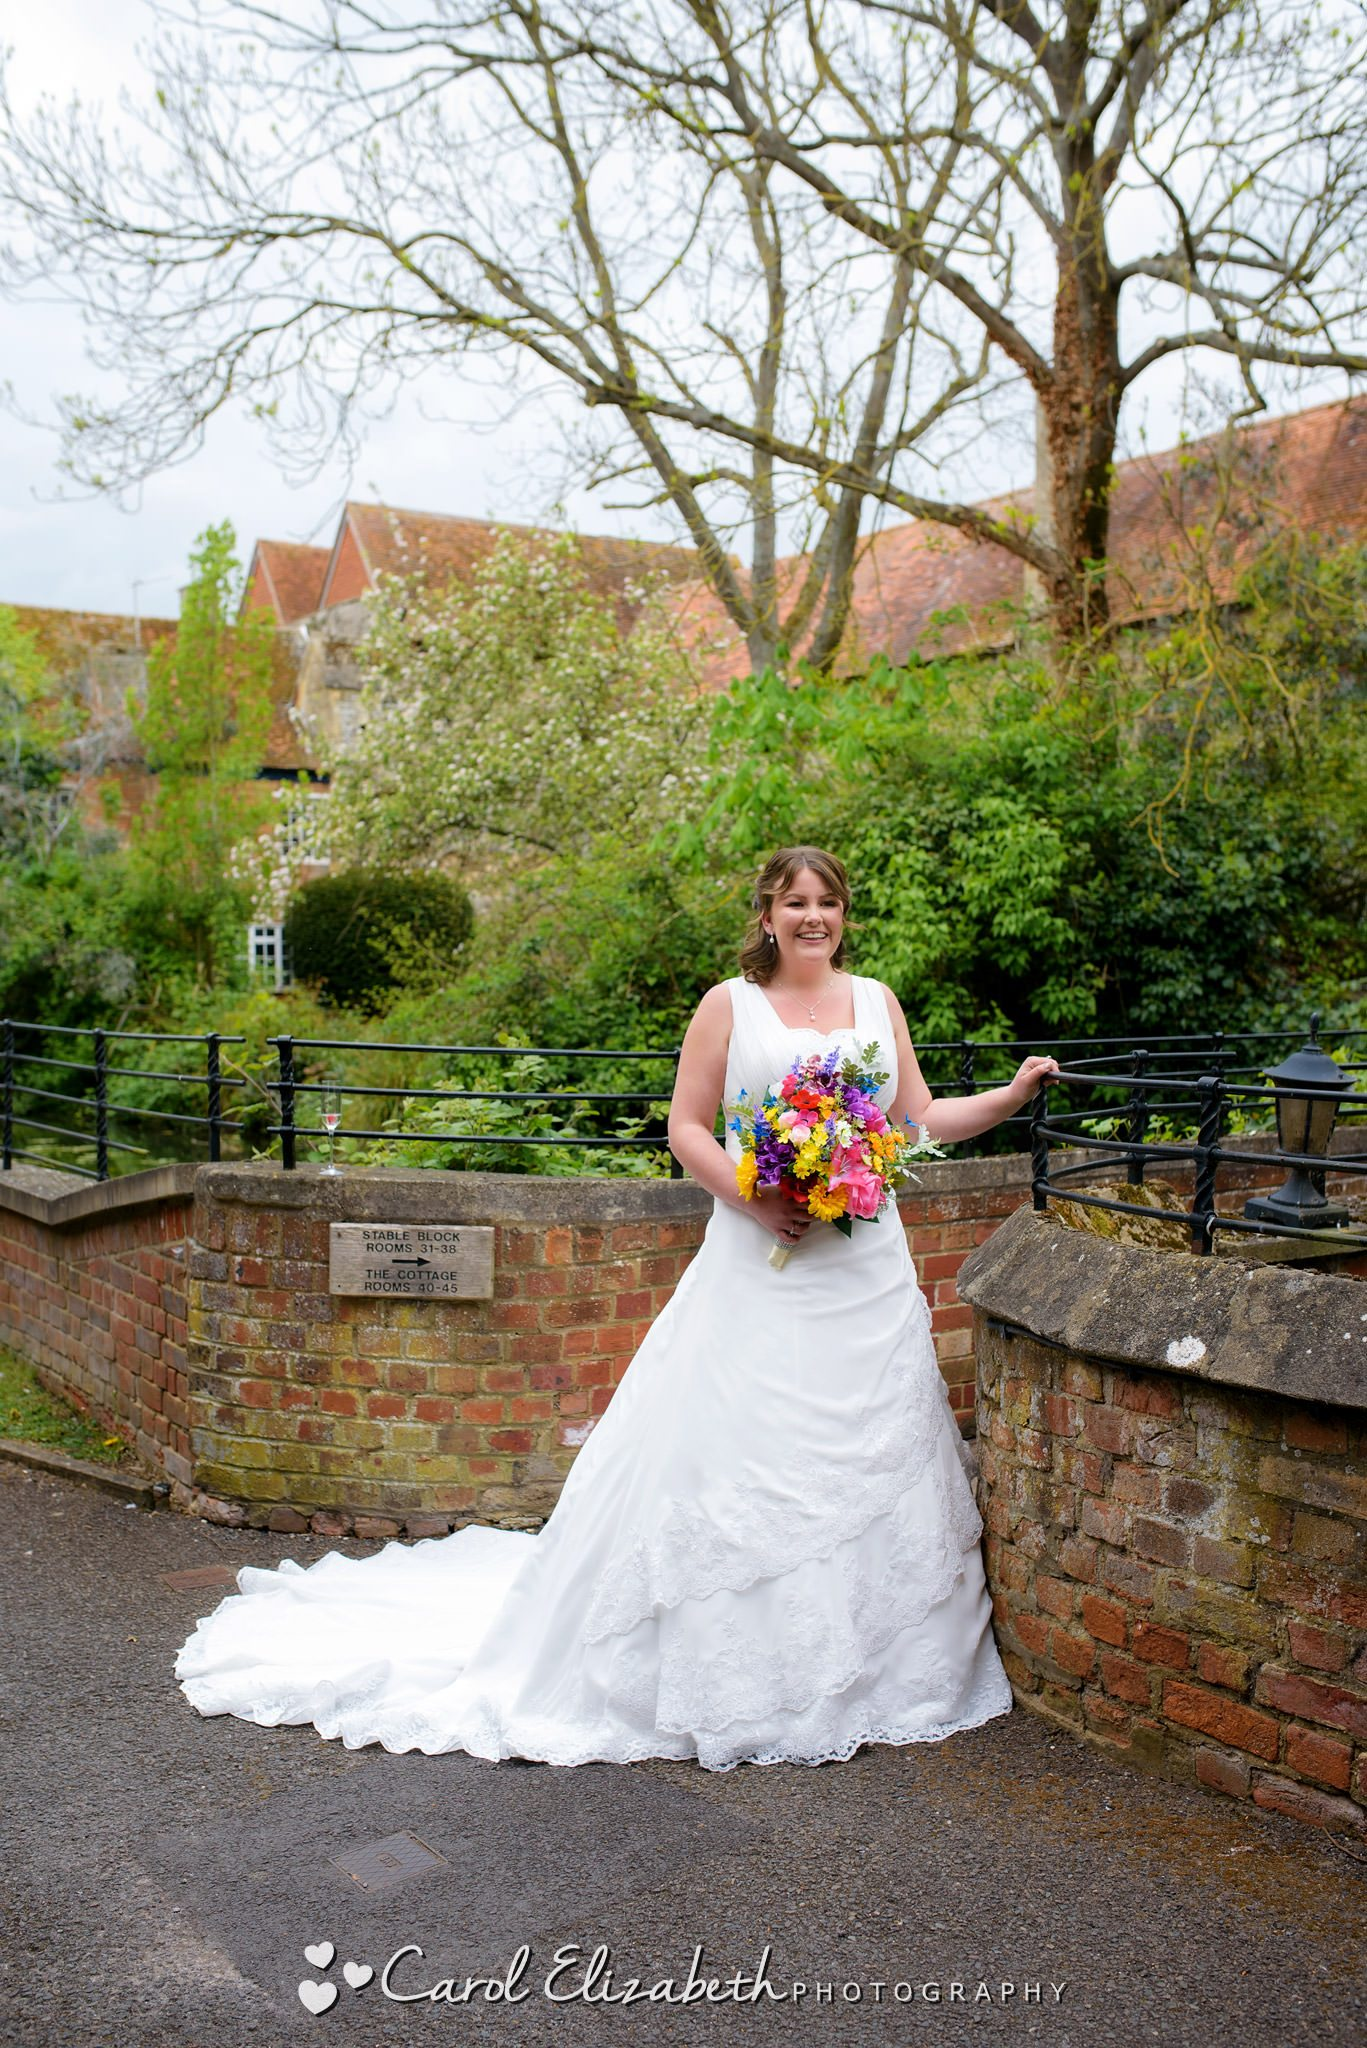 Bride at Coseners House wedding in Abingdon